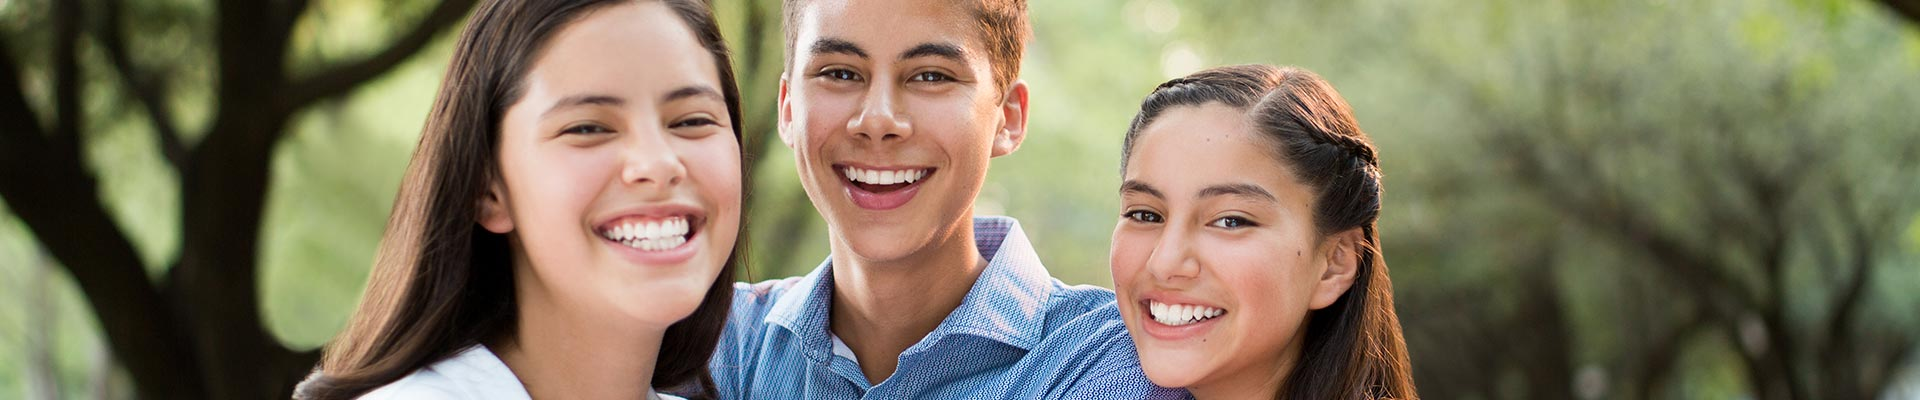 Contact Us Southern Maine Orthodontics in Scarborough, ME